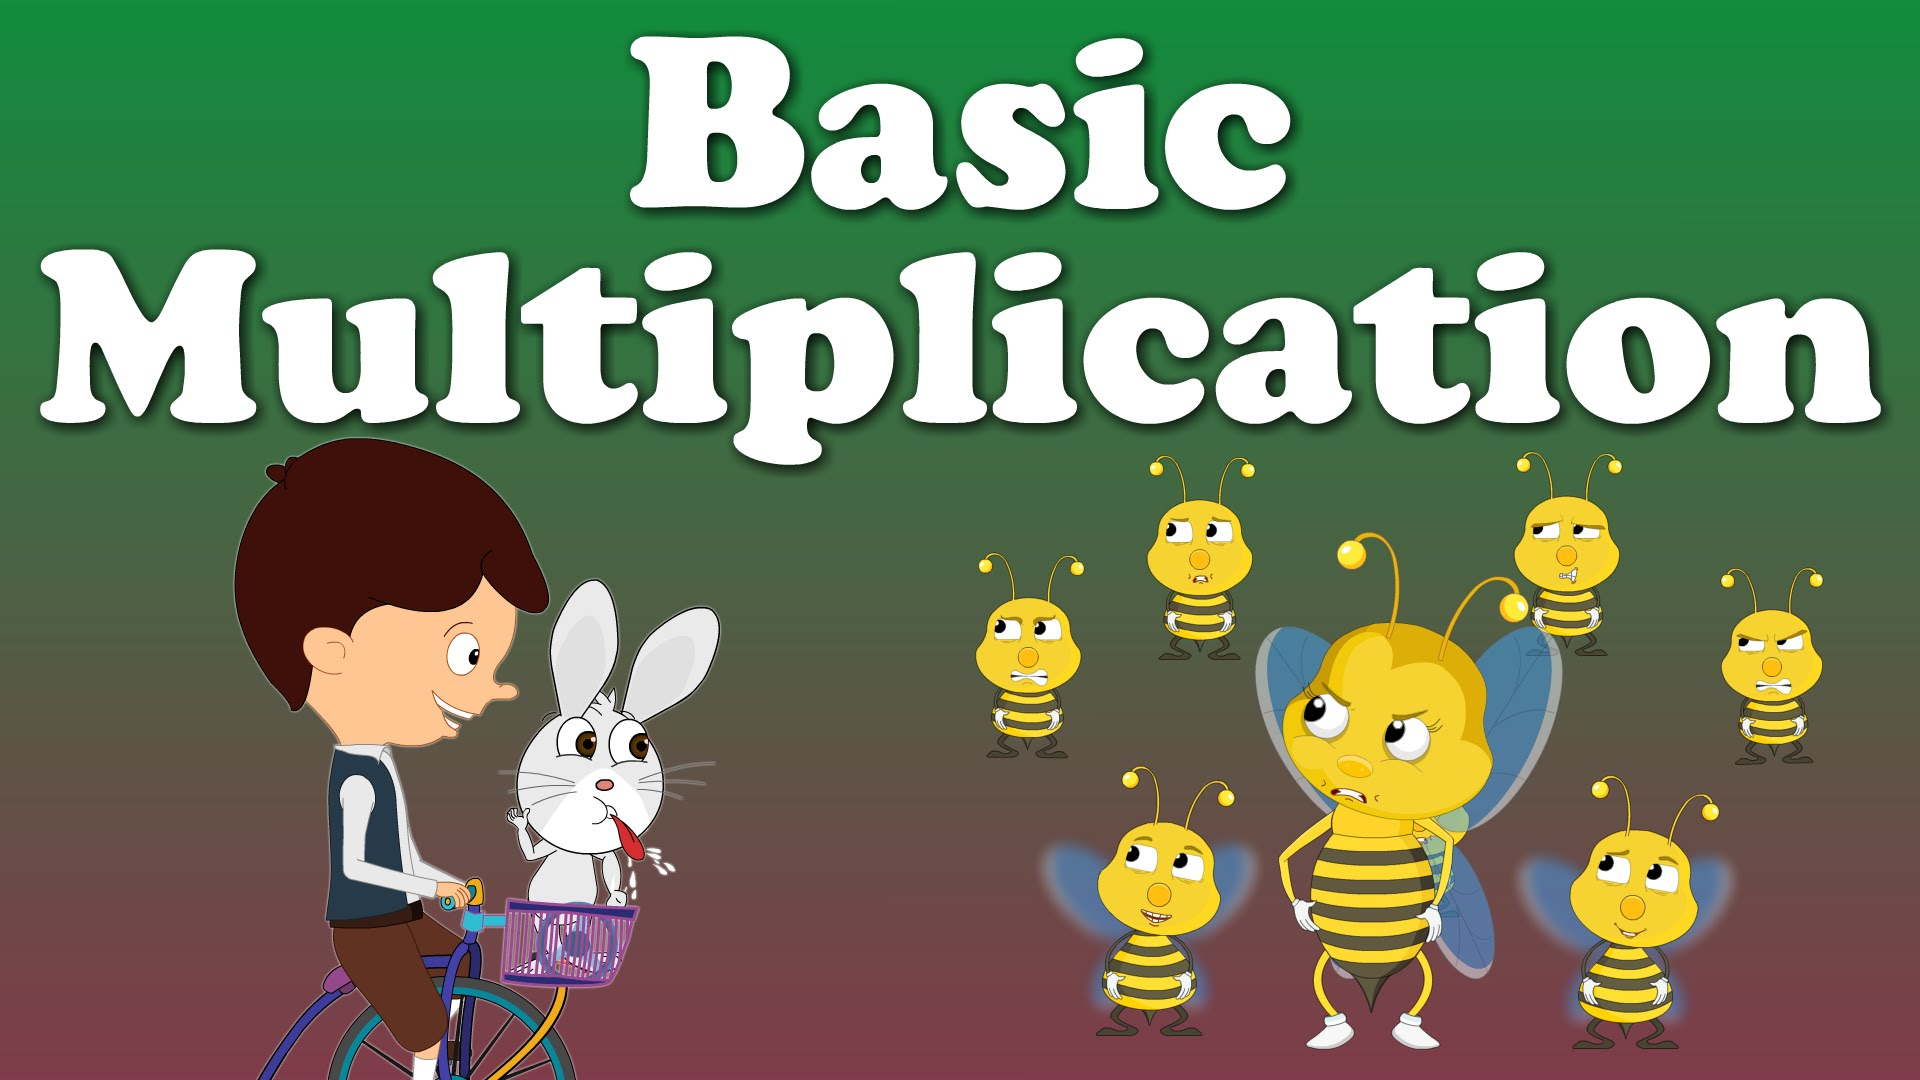 Basic Multiplication For Kids